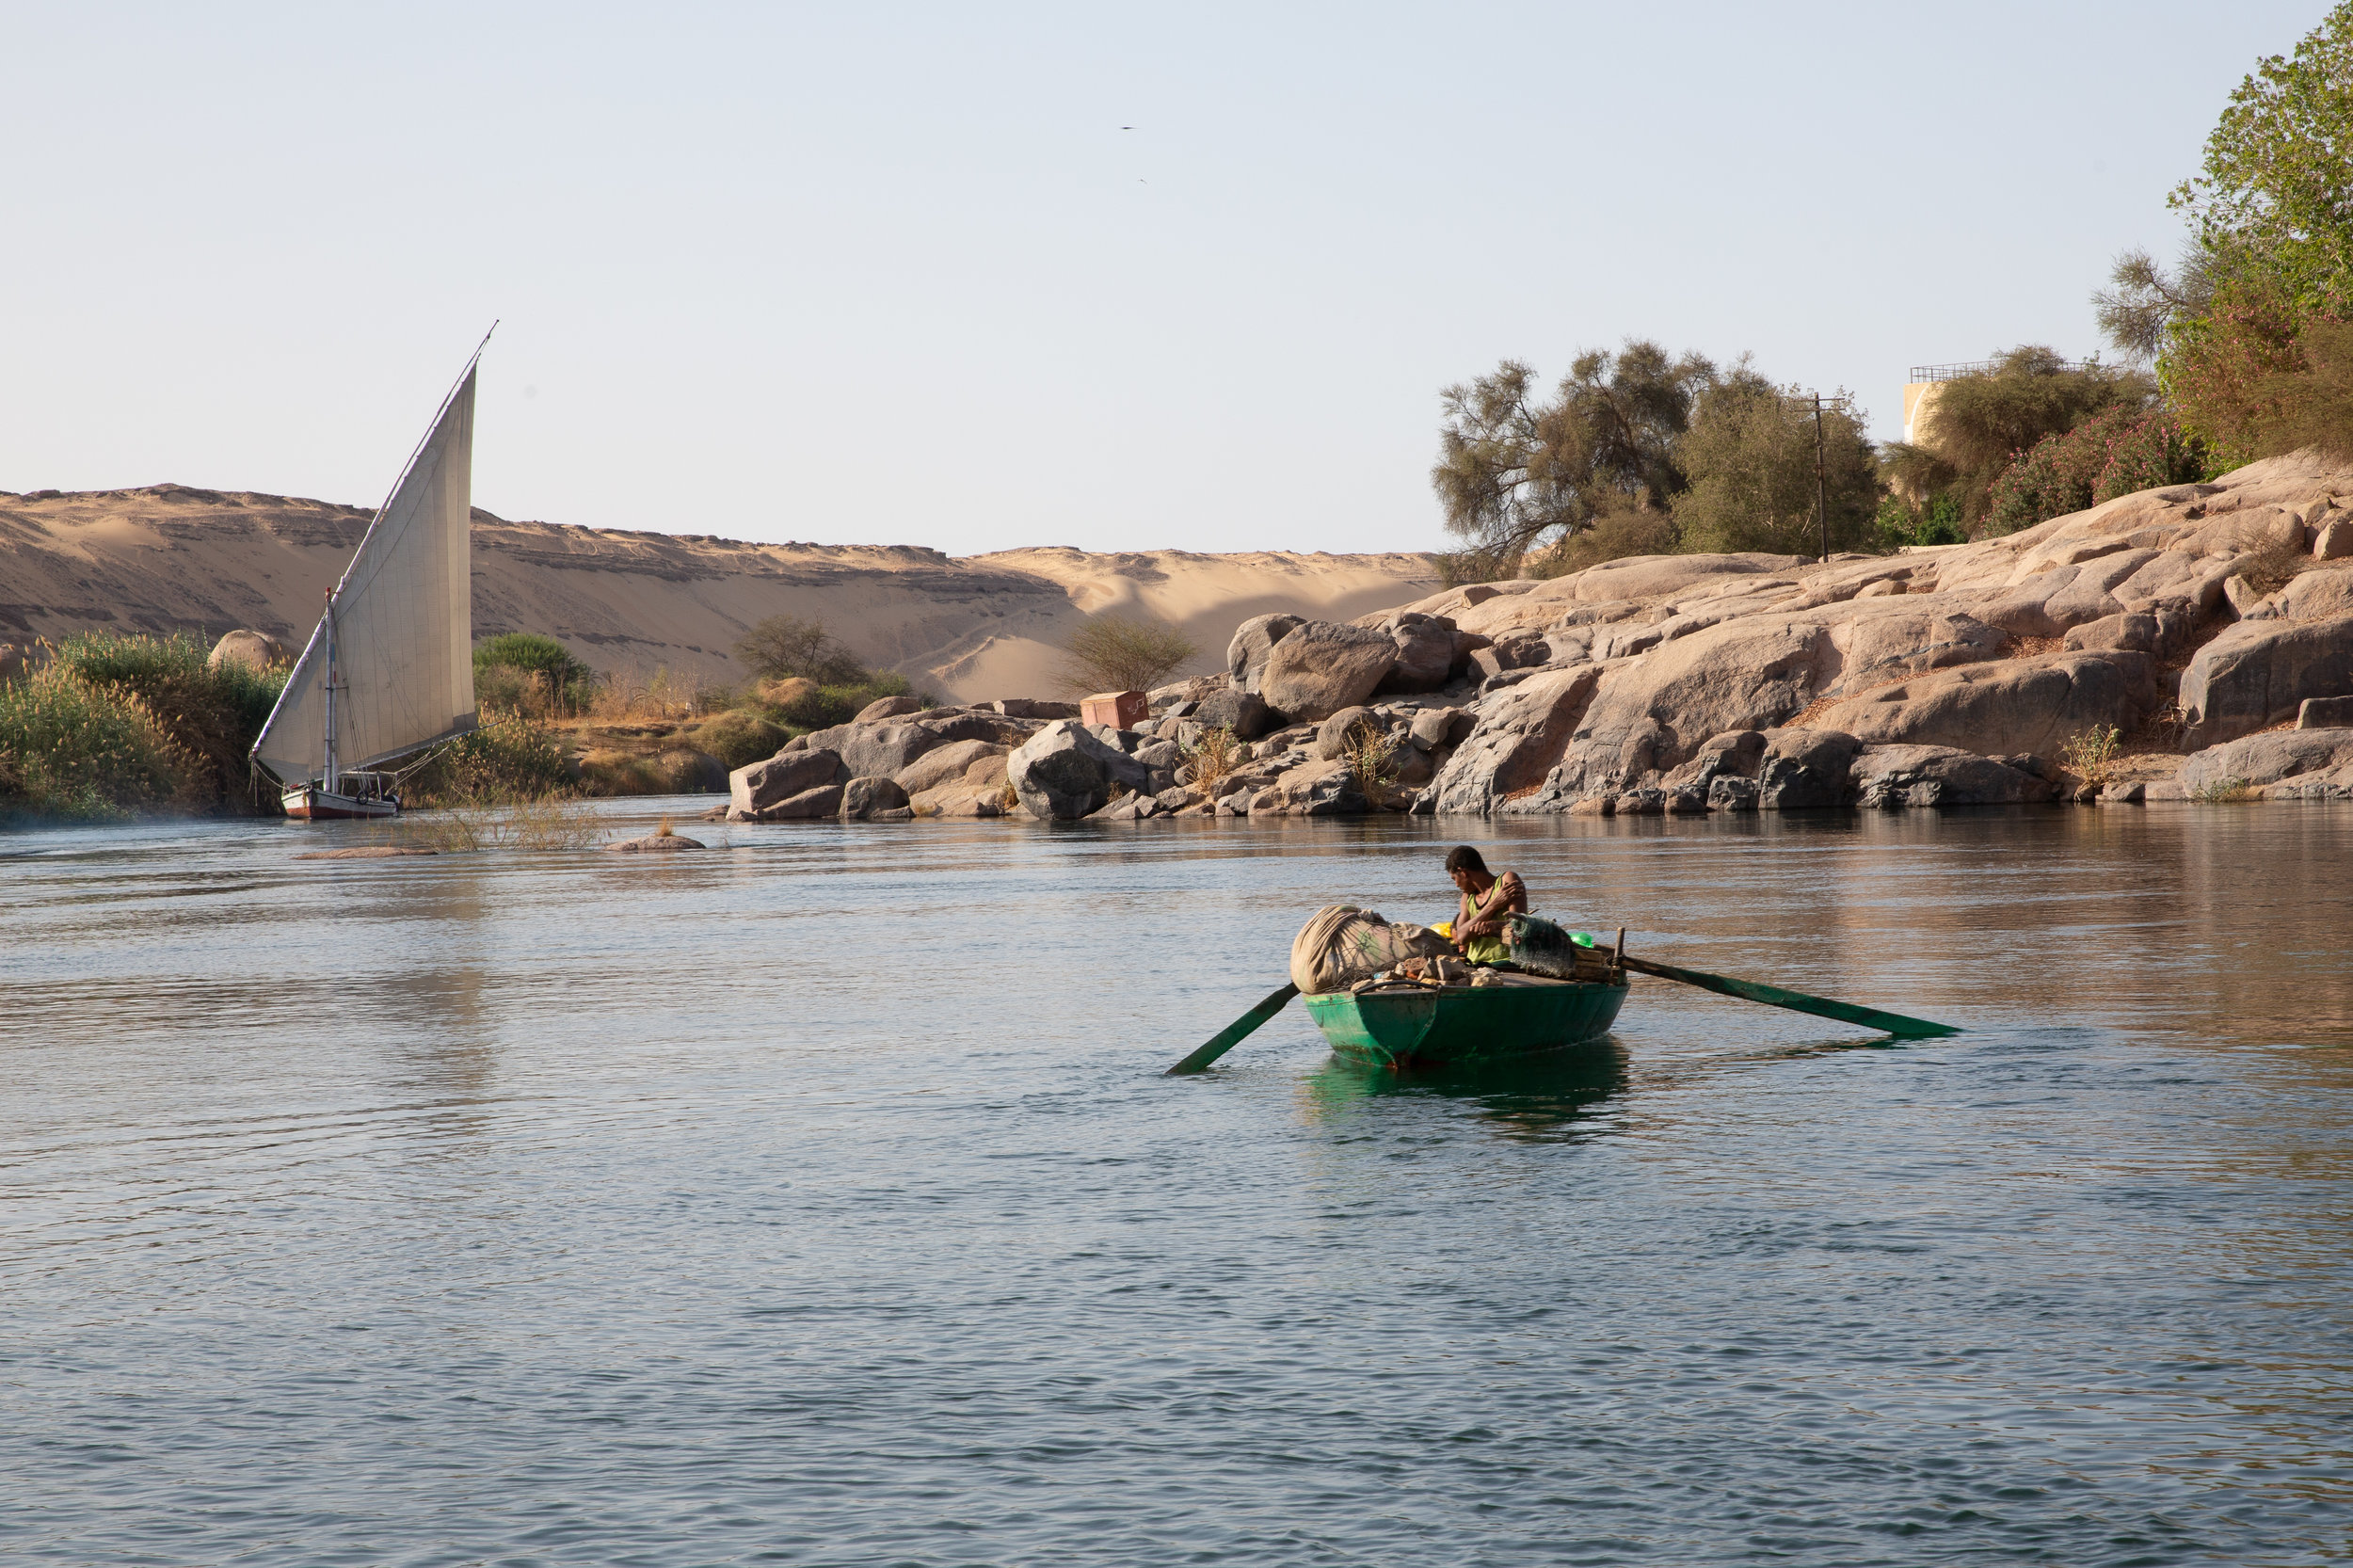 Sailing on the Nile, Aswan - Egypt - Wild Earth Expeditions